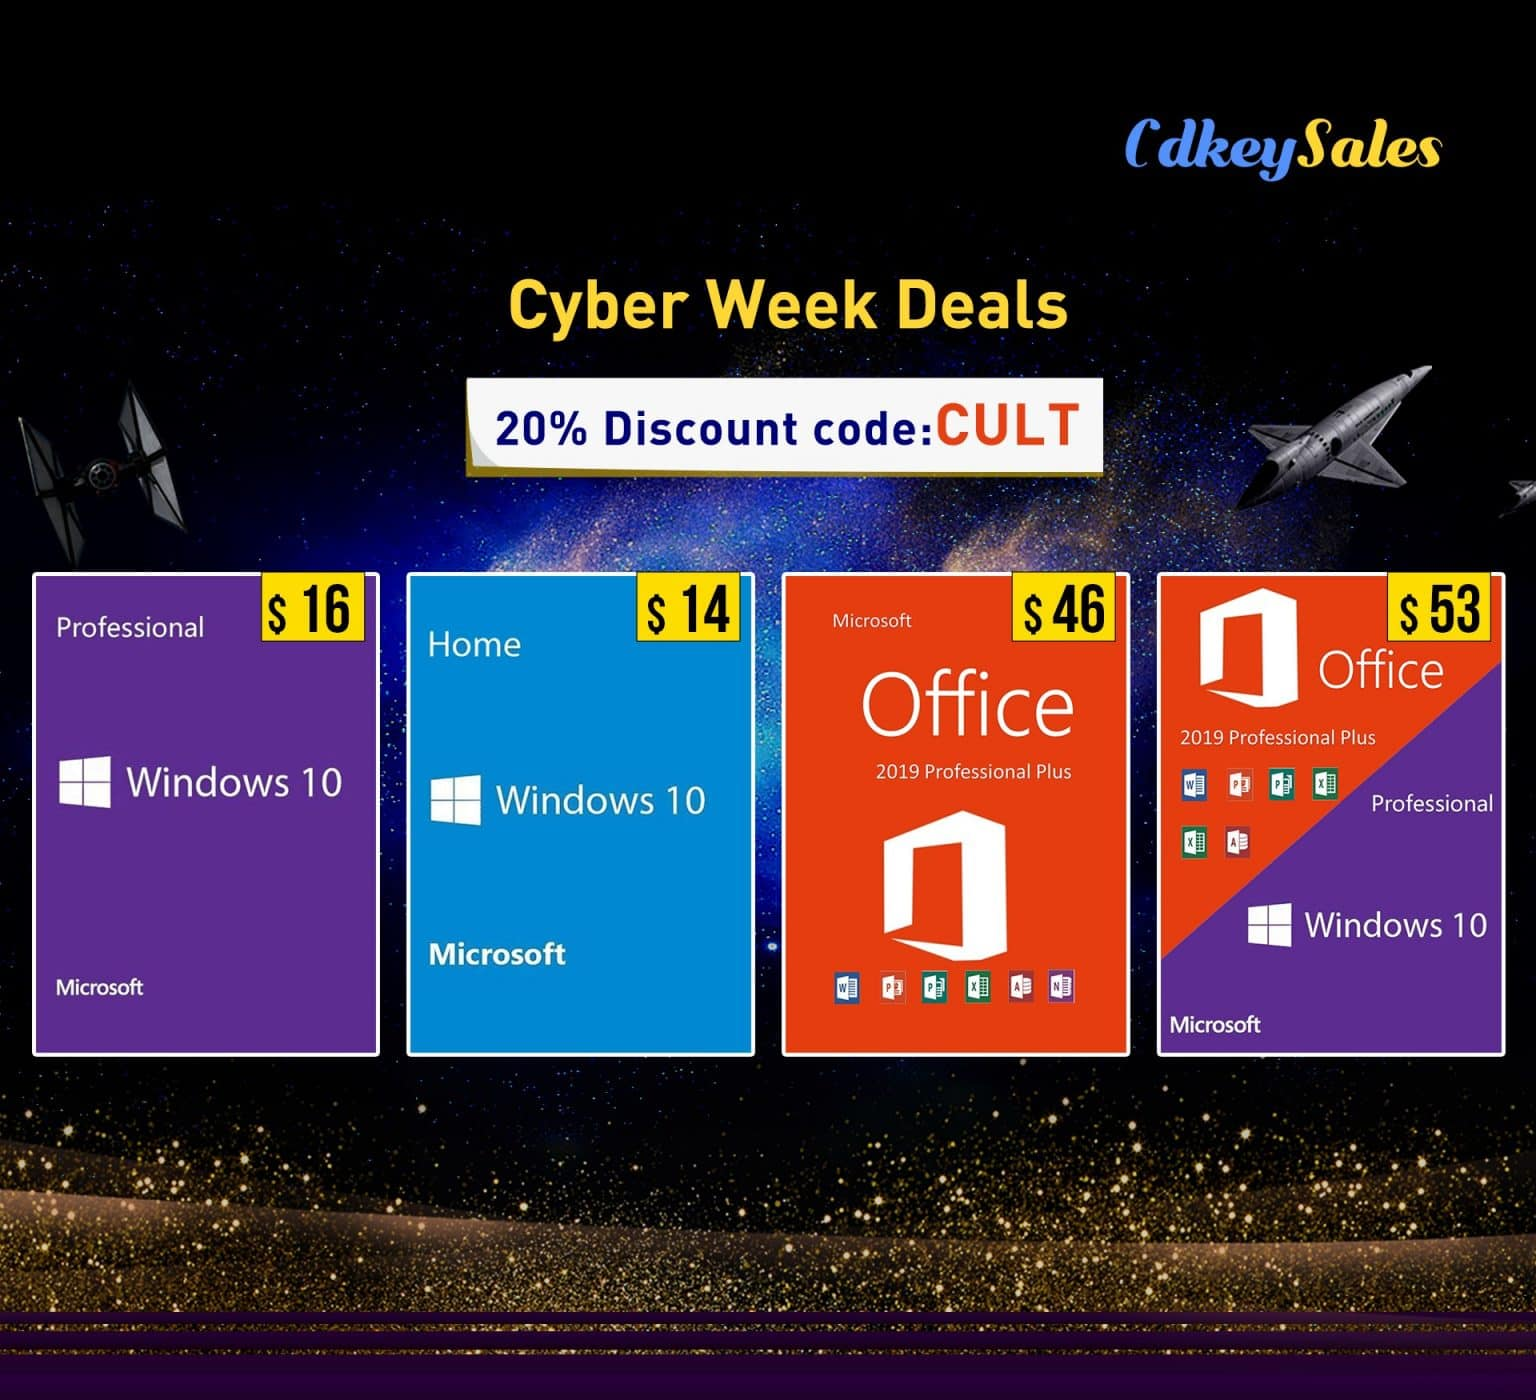 CdkeySales.com offers a 20% discount on Microsoft Windows and Office software activation keys.